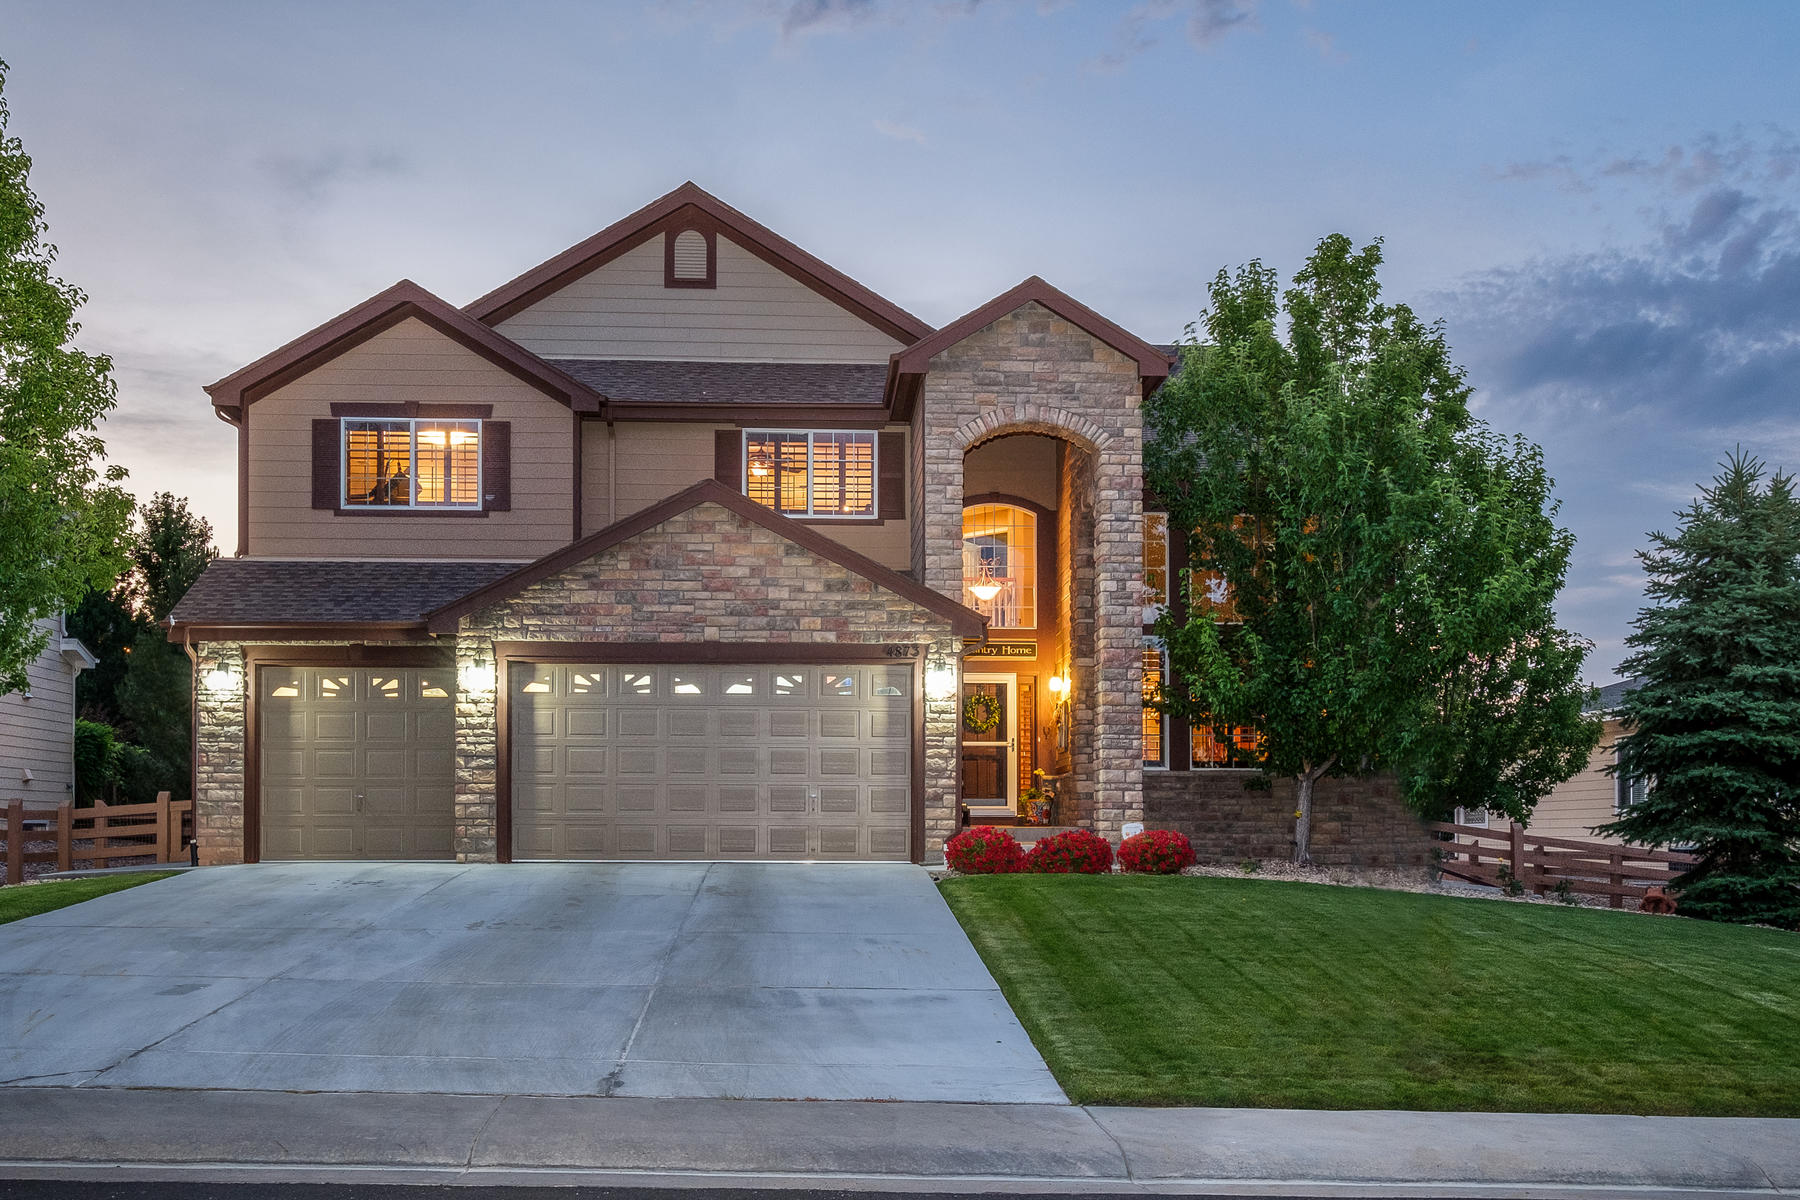 Single Family Home for Active at Best in show- 5 star rating 4873 Wagontrail Ct Parker, Colorado 80134 United States